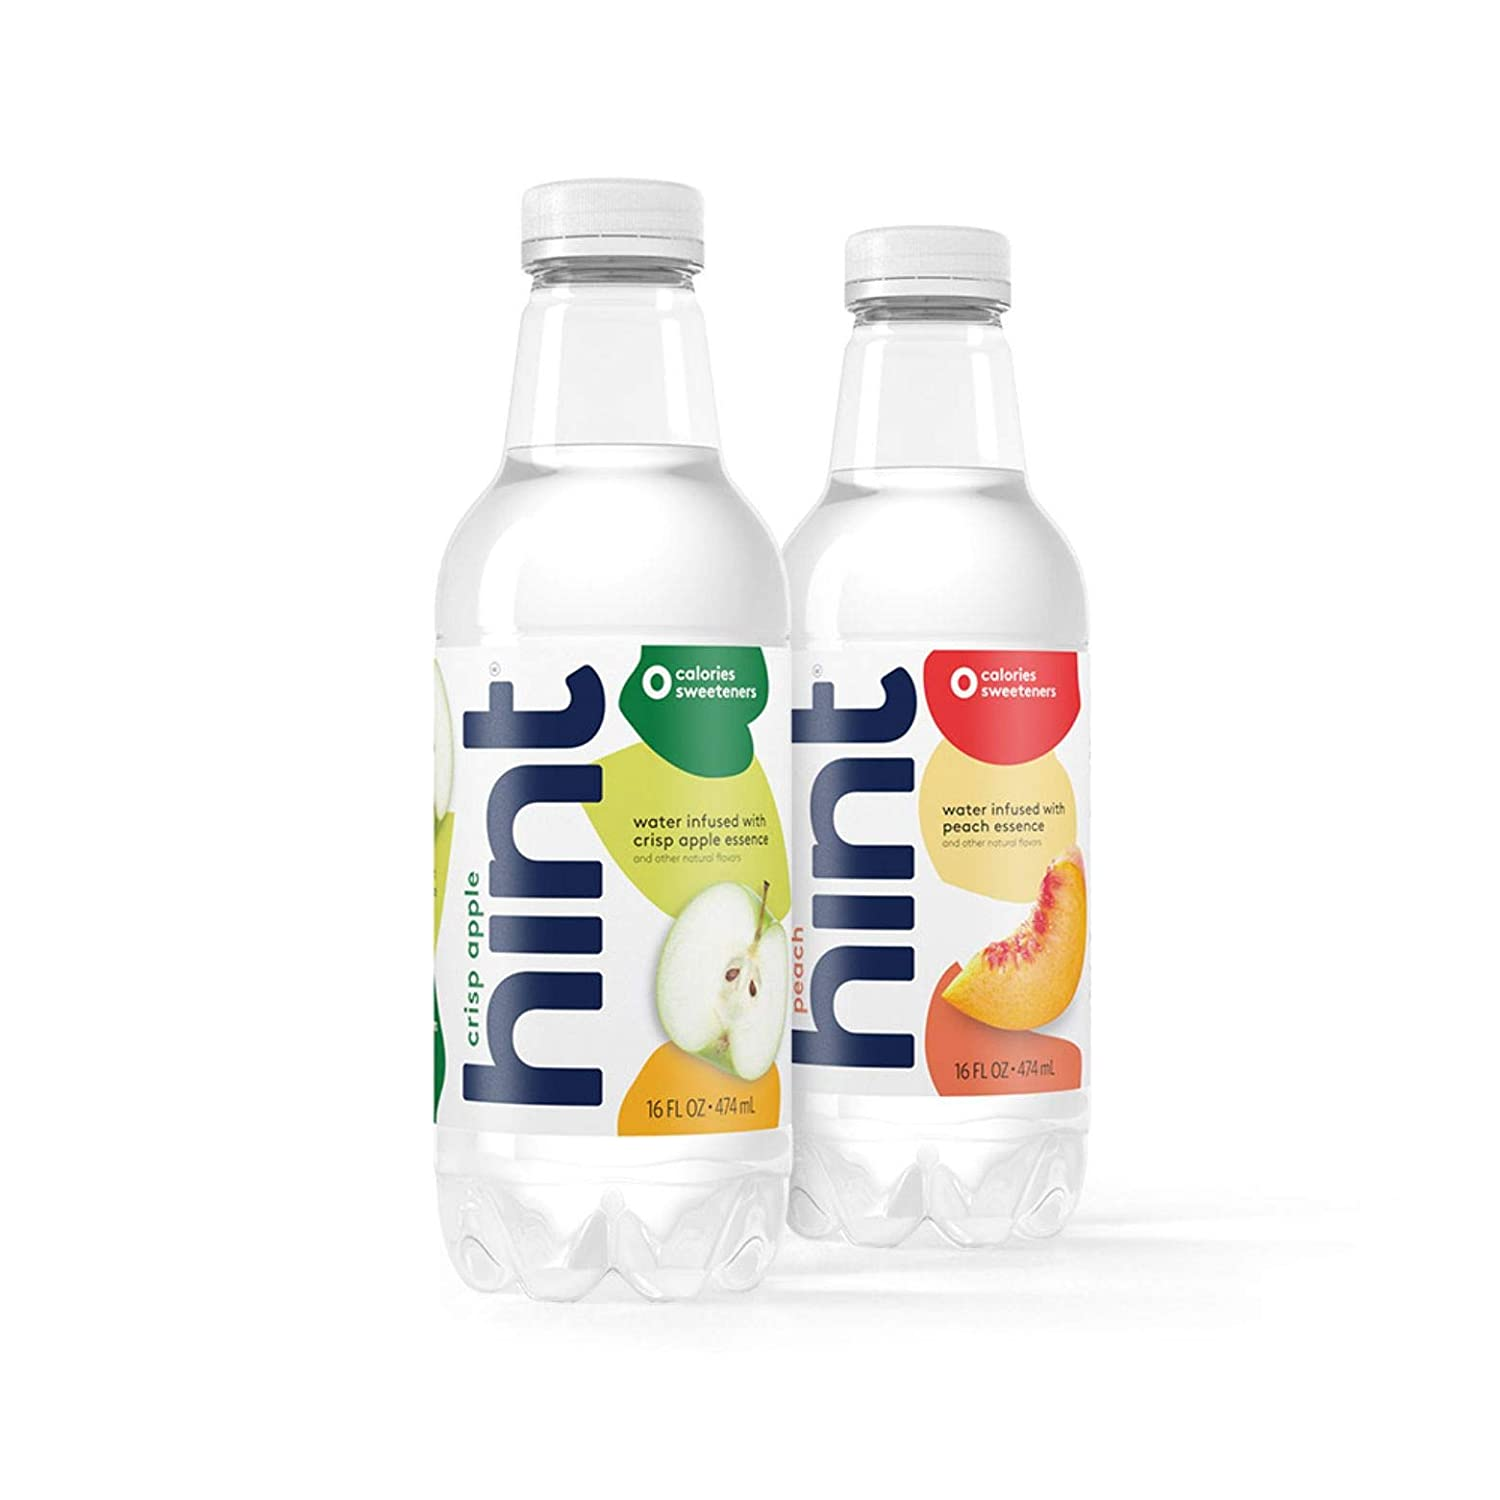 16 oz Hint Water Crisp Apple & Peach Bundle (24 Pack) - 12 Pack Pure Water Infused with Crisp Apple and 12 pack Hint Water Peach